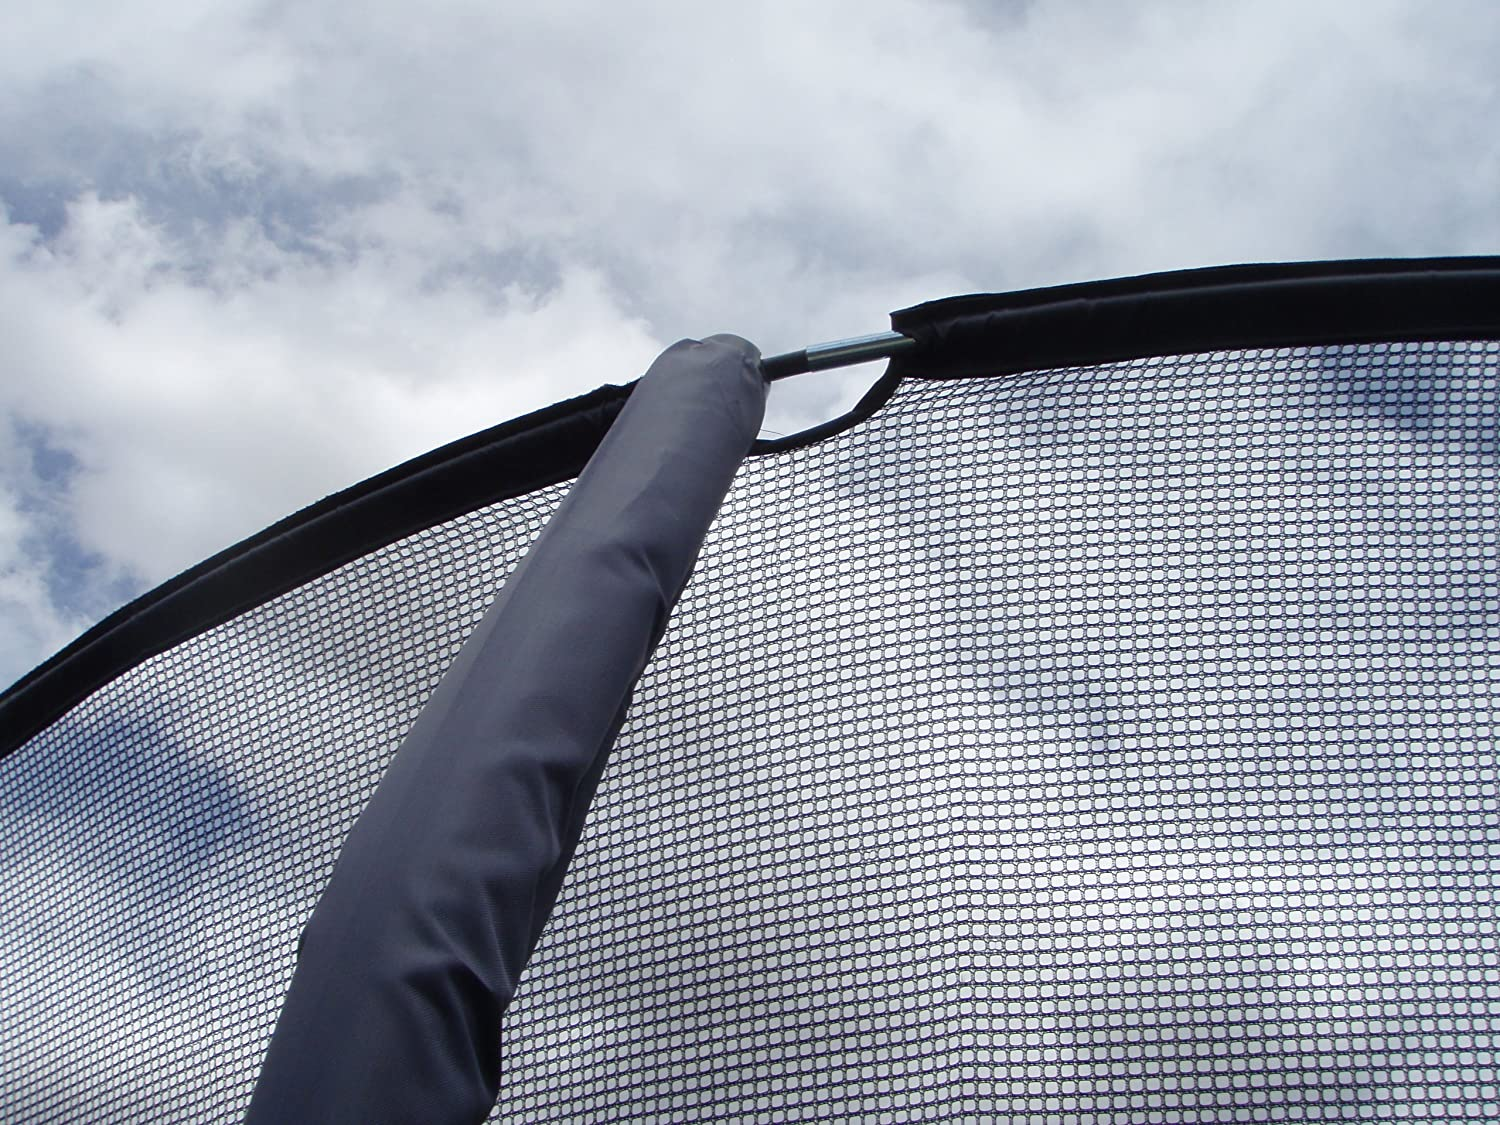 JUMPKING REPLACEMENT NET FOR 15 TRAMPOLINE 4 LEG//4 STRAIGHT ENCLOSURE POLE